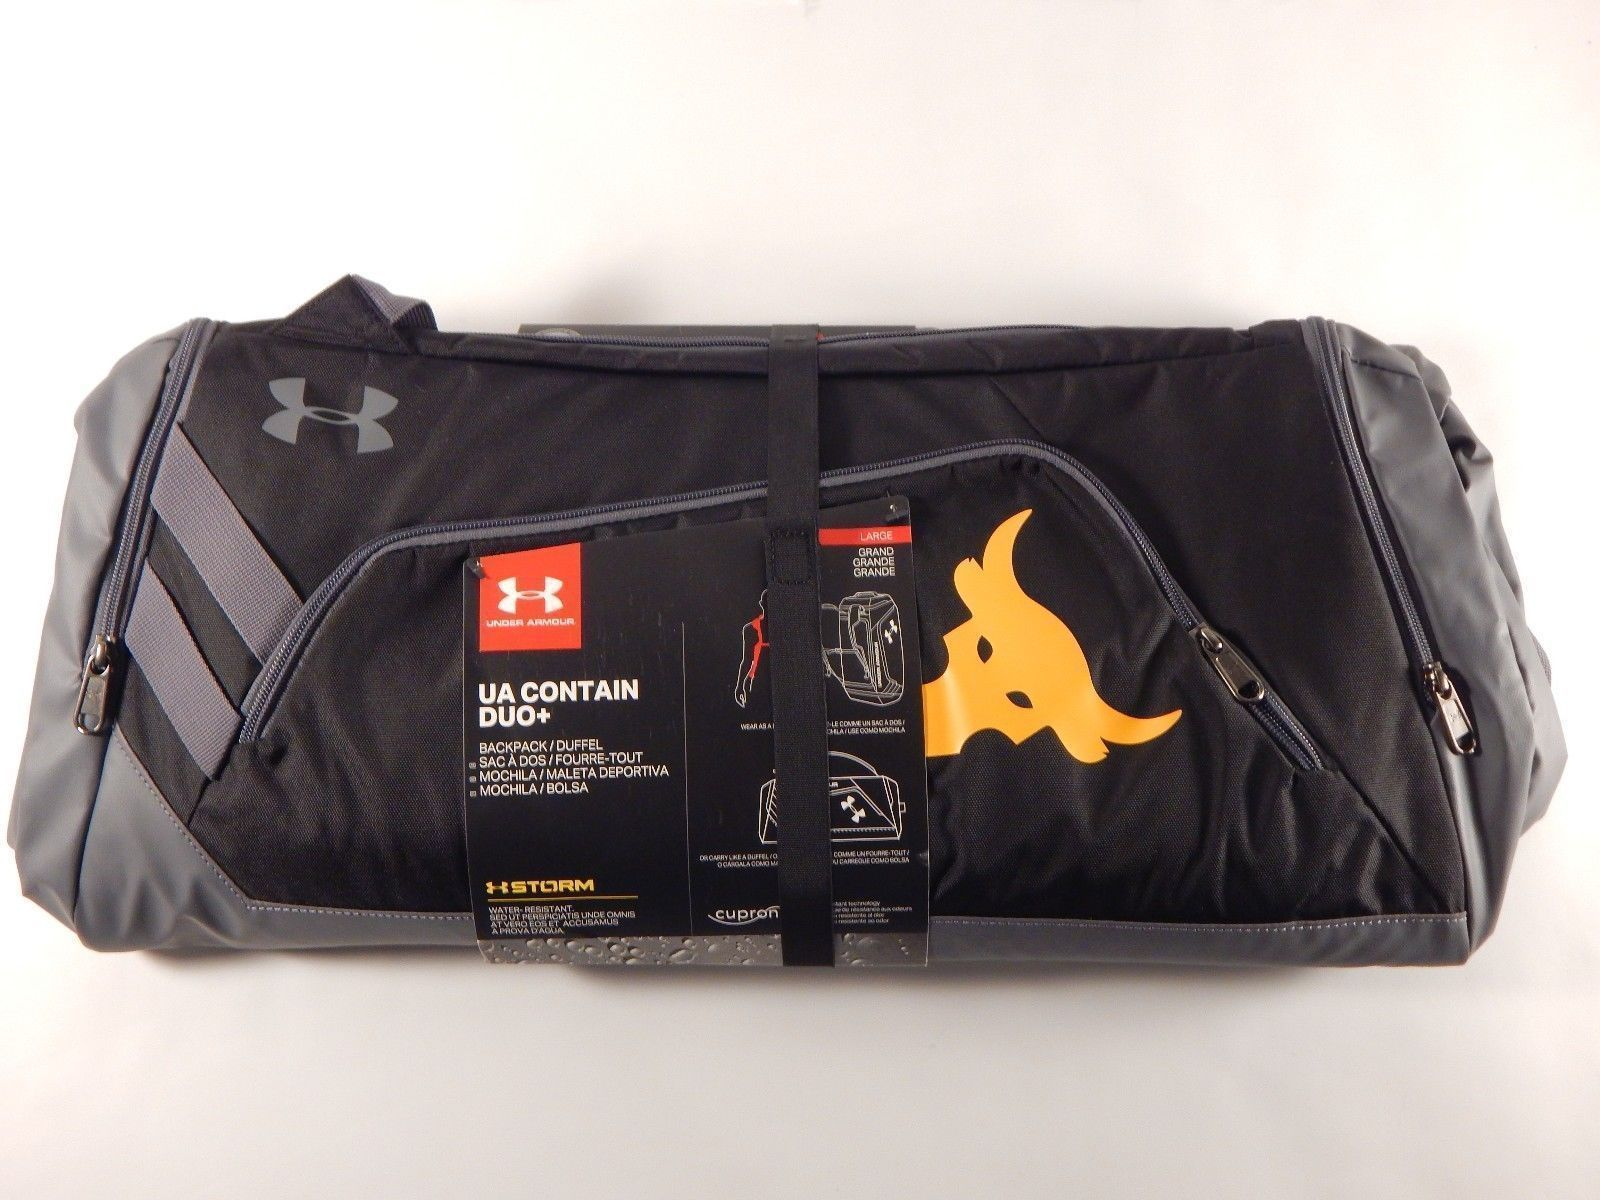 57. 57. Previous. Under Armour X Project Rock UA Contain Duo+ Duffle Bag  Gym Sports Backpack SZ L 396a655466dd9